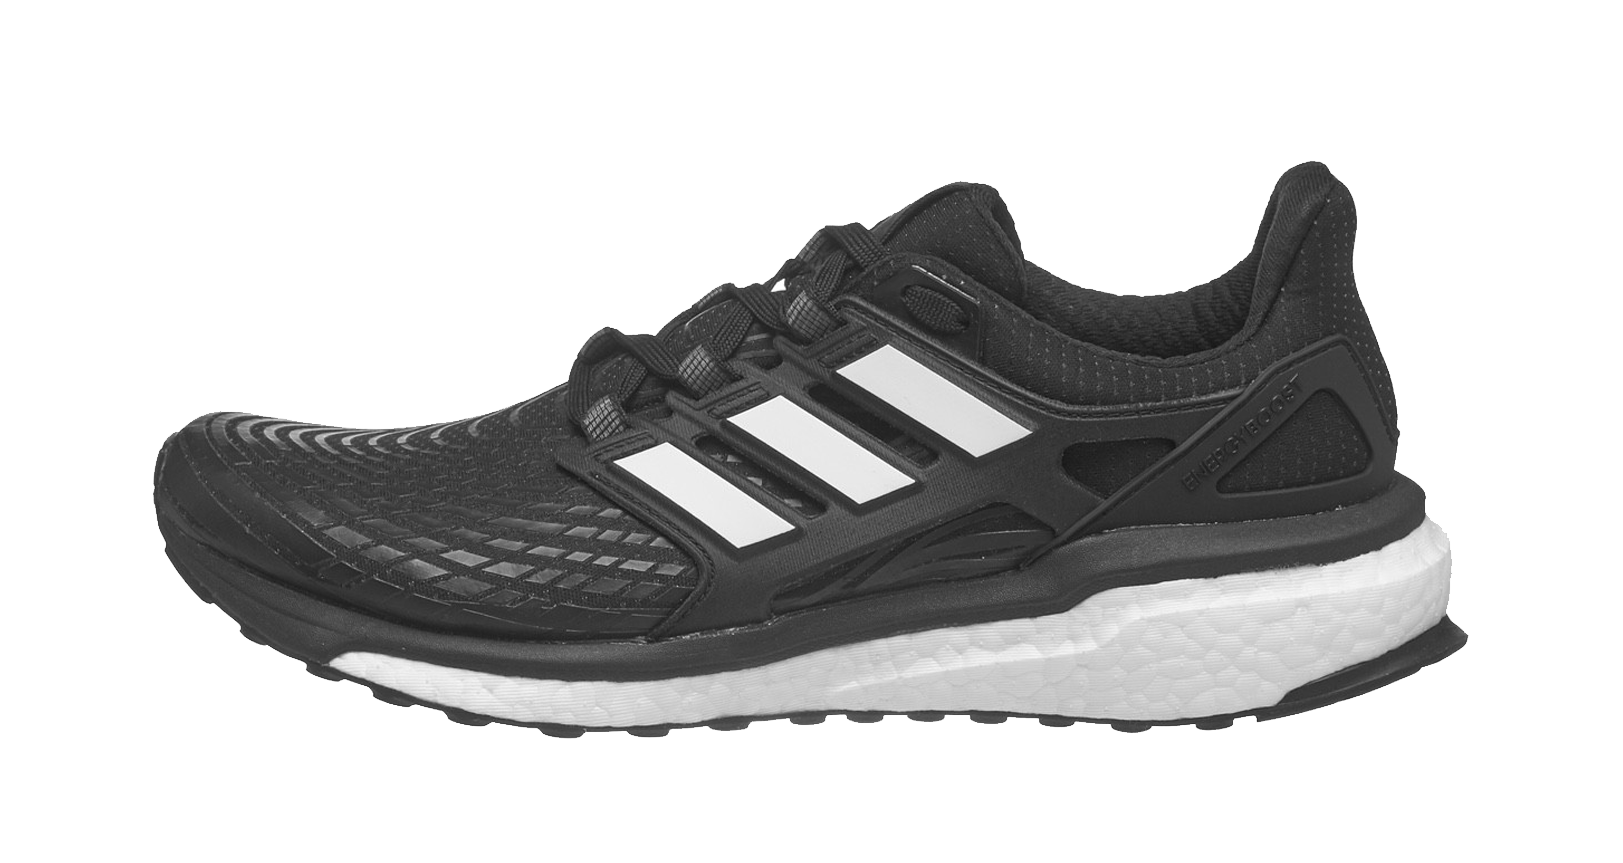 Performance Believe » Adidas Run Boost 4 In The Review Energy qwSFOtCFx4